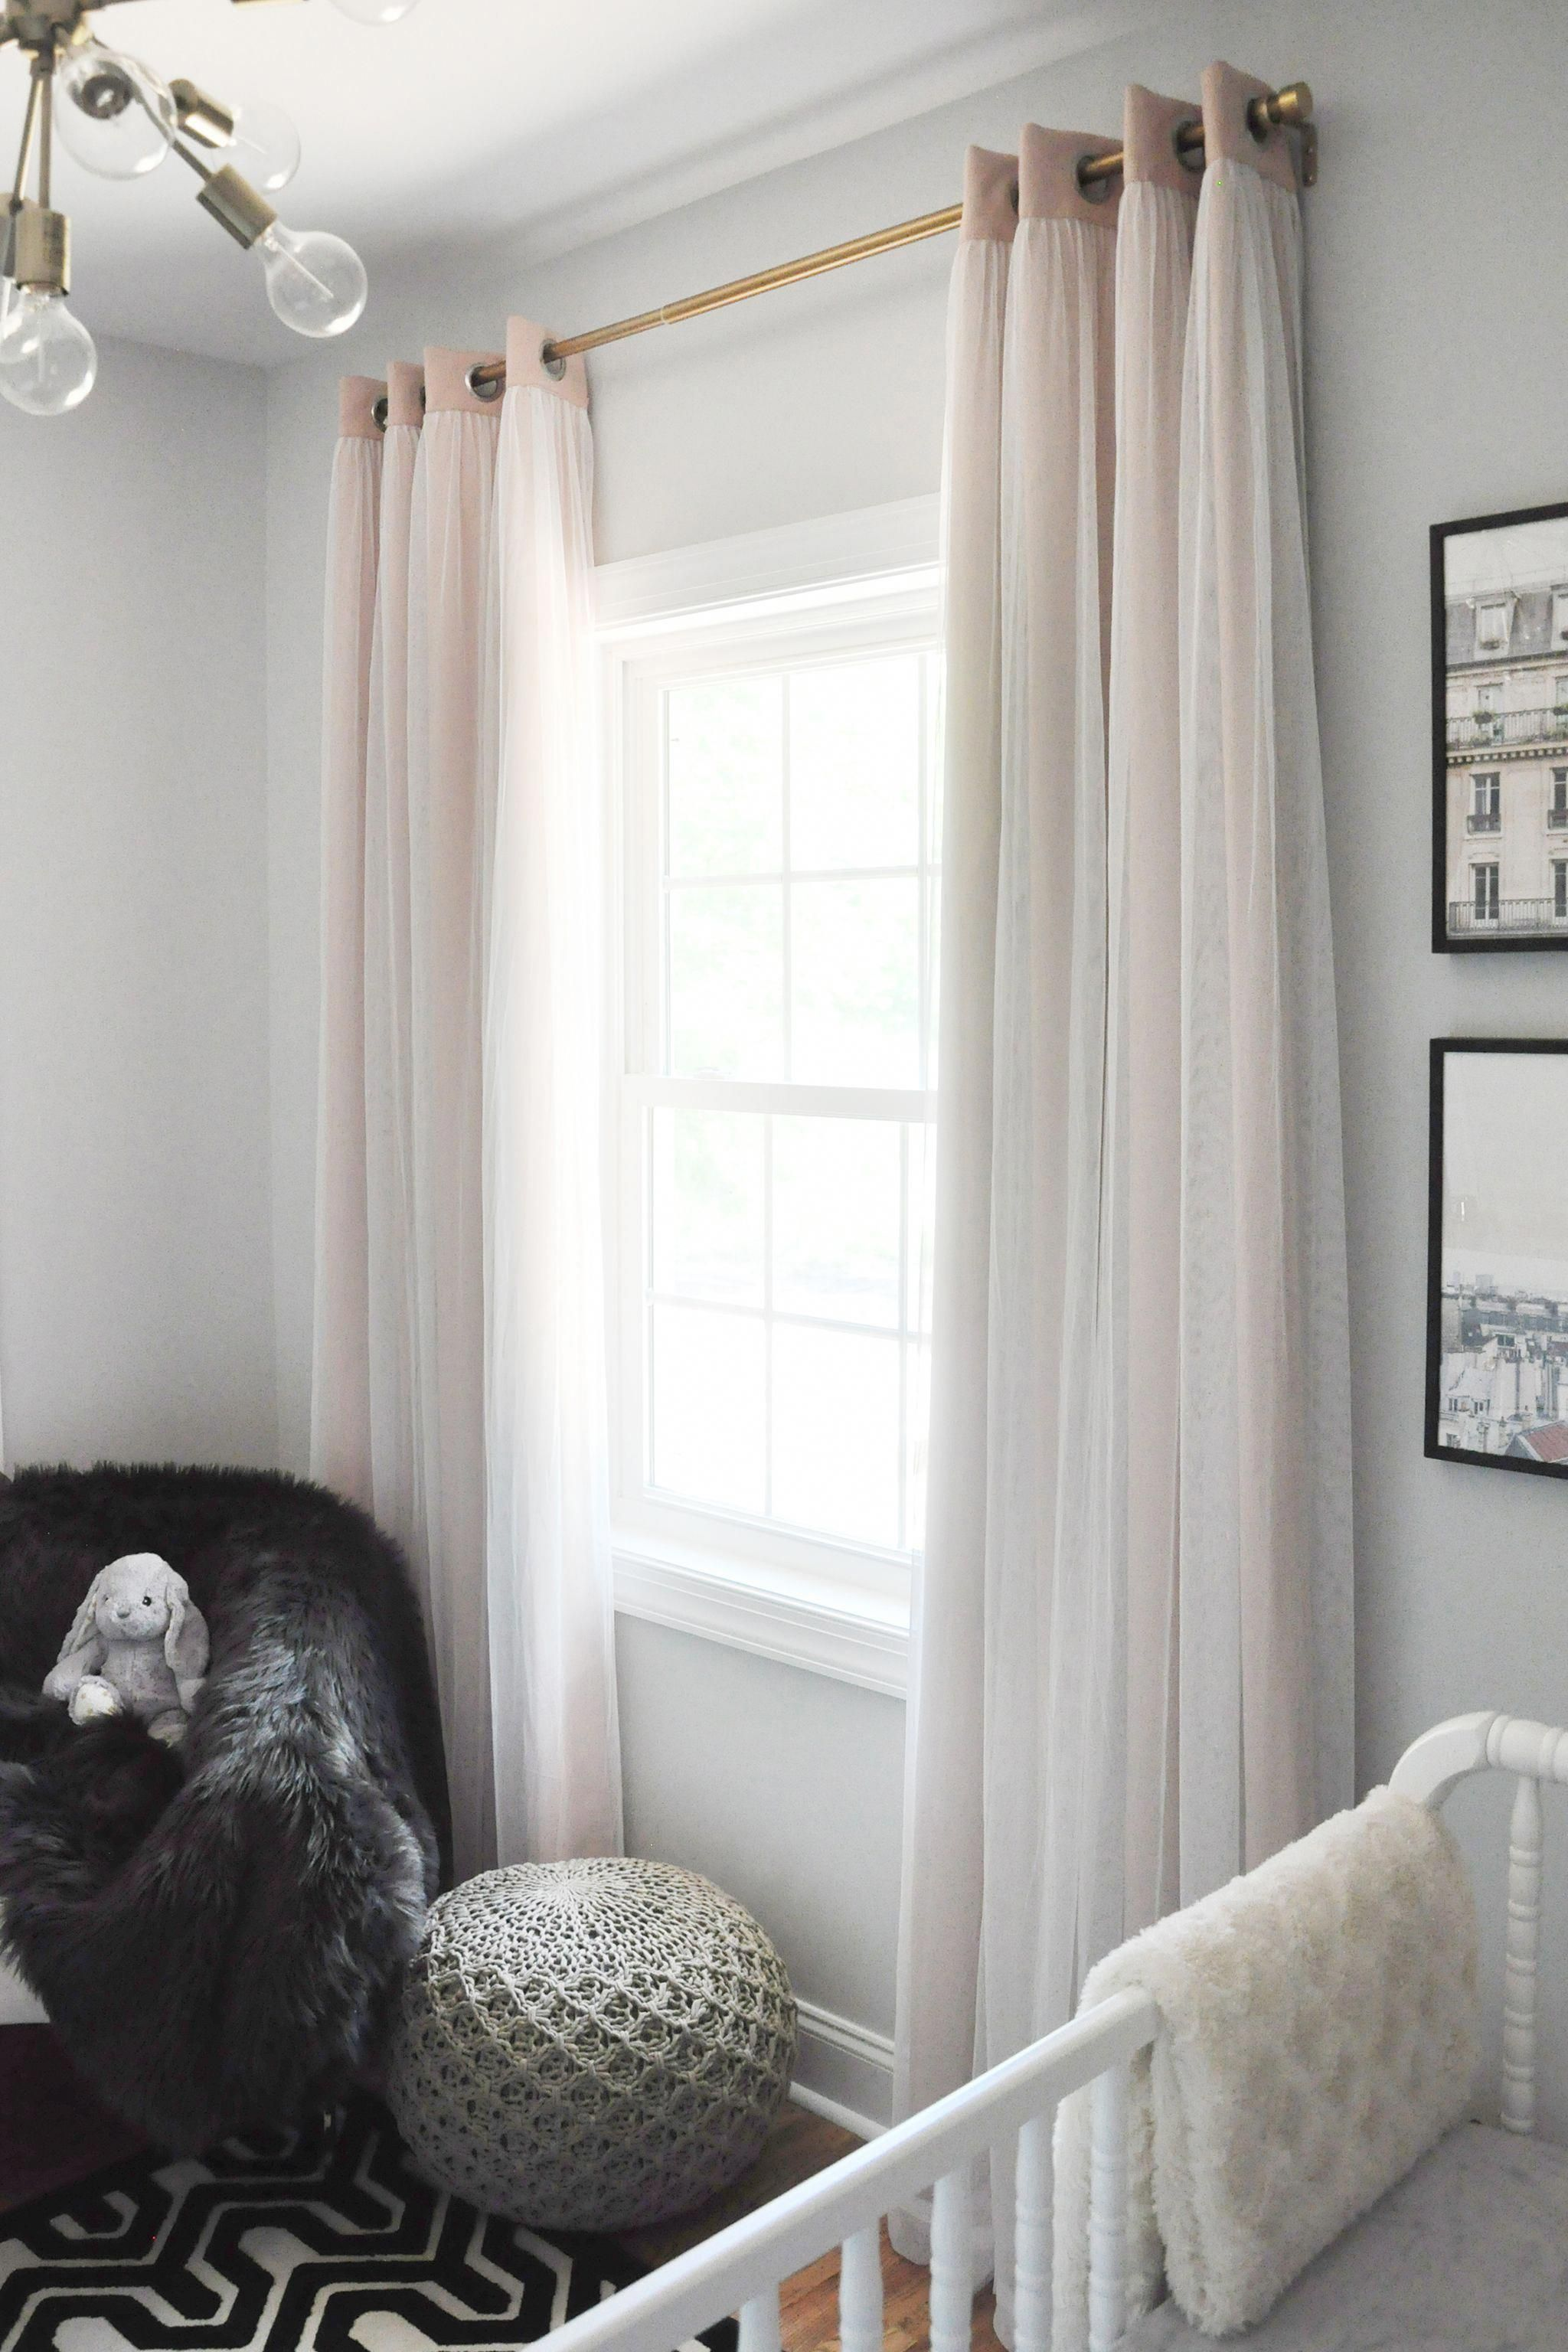 Blush Blackout Curtains In Glam Nursery Project Nursery Roomdarkeningideas Blackoutcurt Blush Blackout Curtains Girls Bedroom Curtains Nursery Curtains Girl